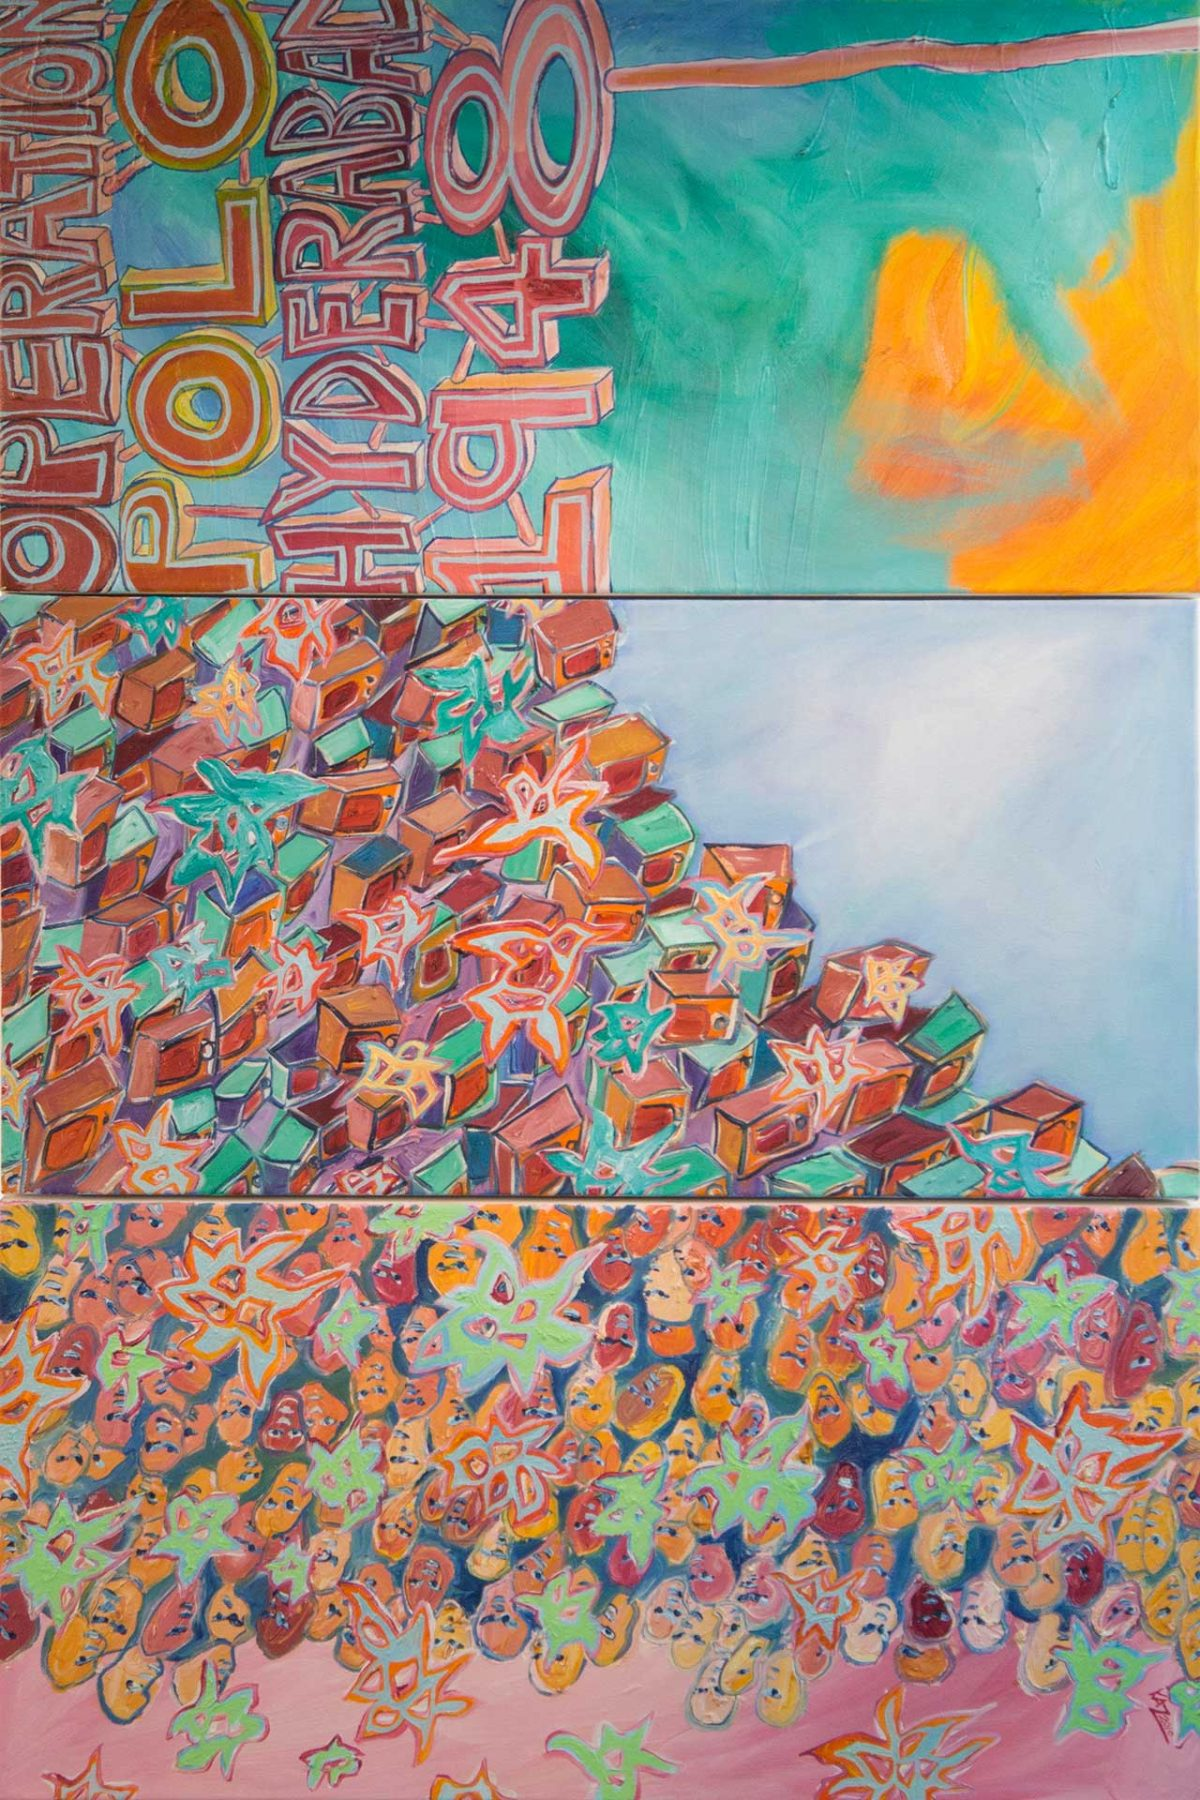 Operation Polo (2009) oil on canvas (3 panels) 0.91H x 0.61W meters